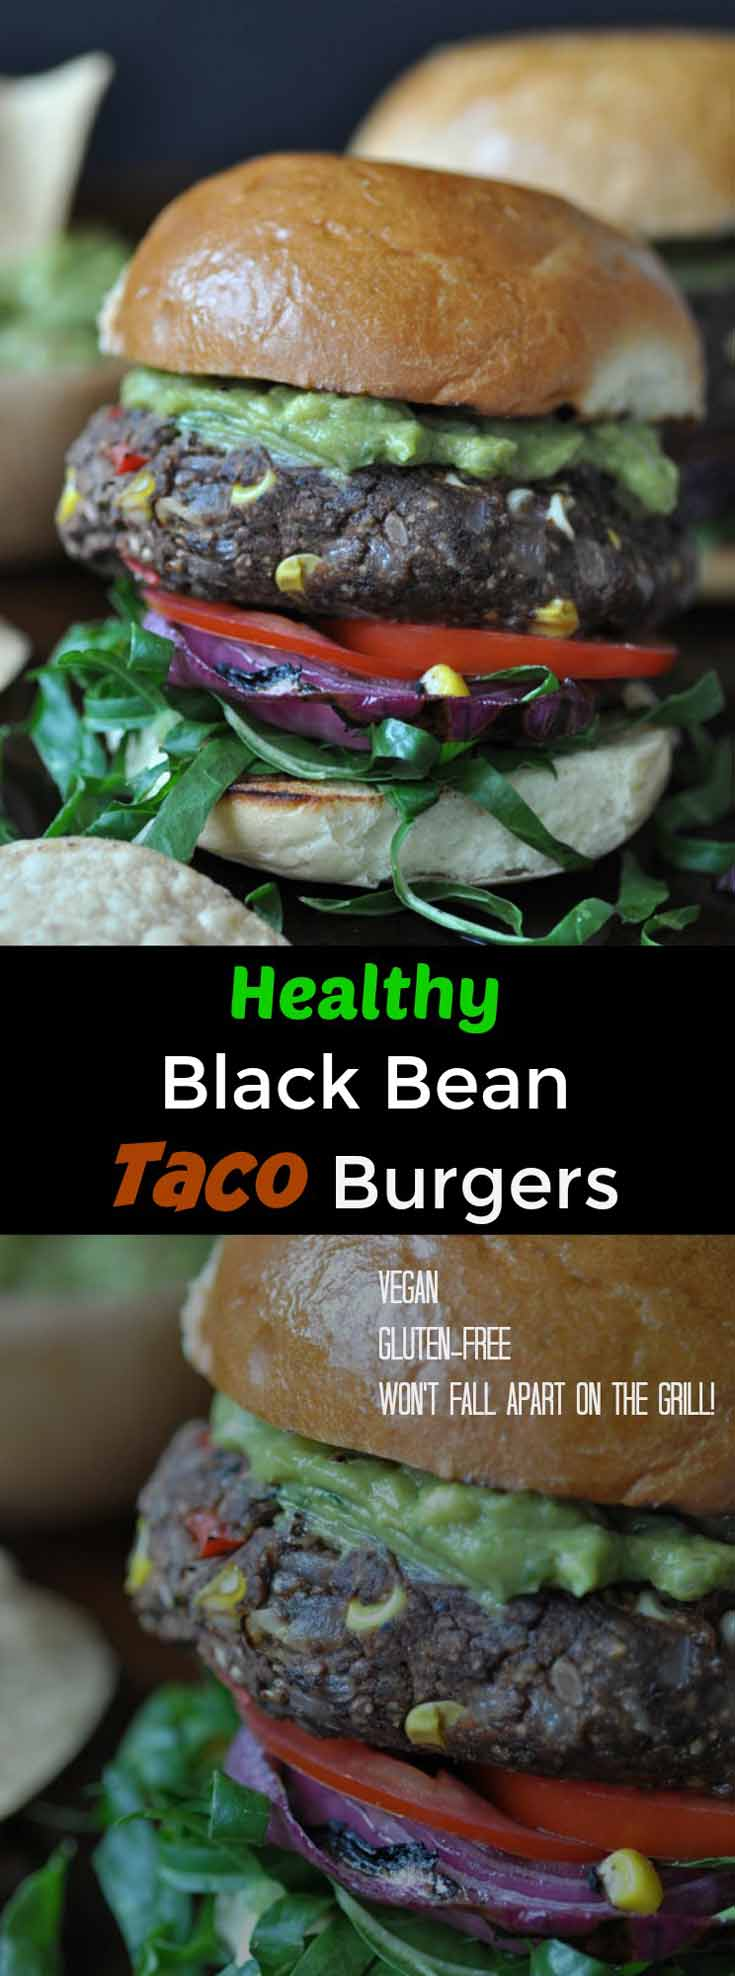 A healthy & easy vegan and gluten-free Black Bean Taco Burger!